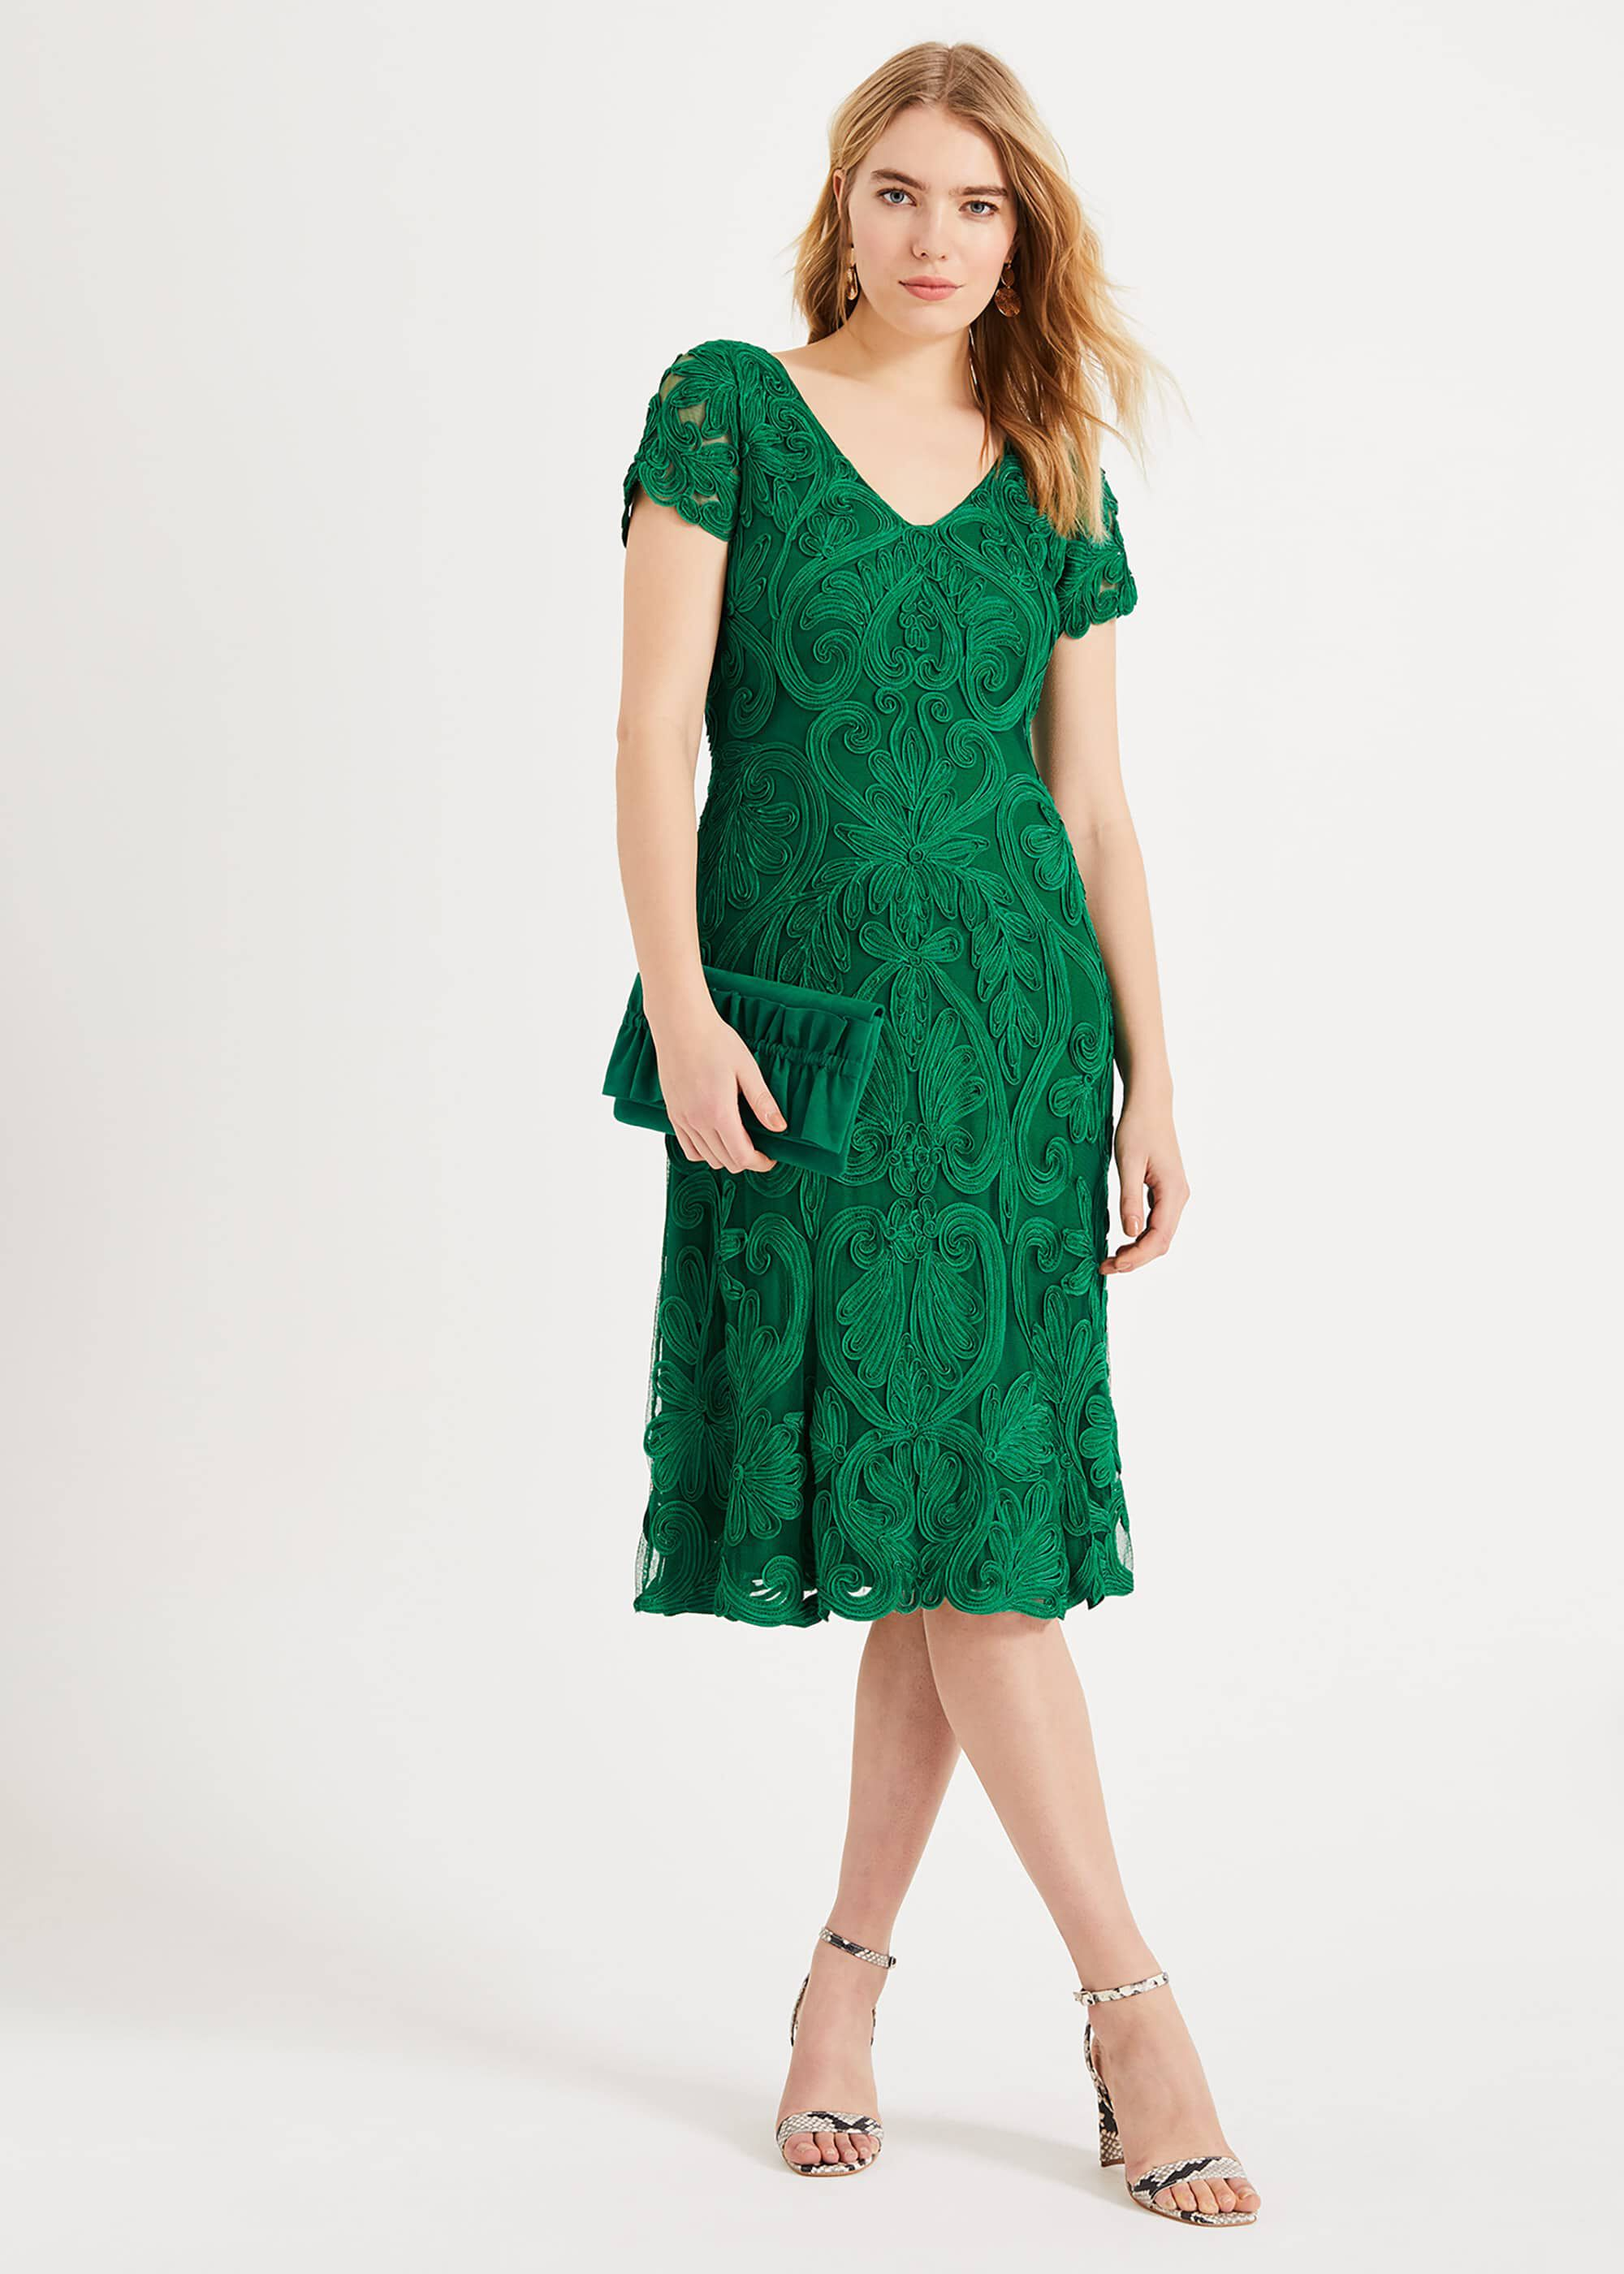 Phase Eight Kady Tapework Dress, Green, Fit & Flare, Occasion Dress